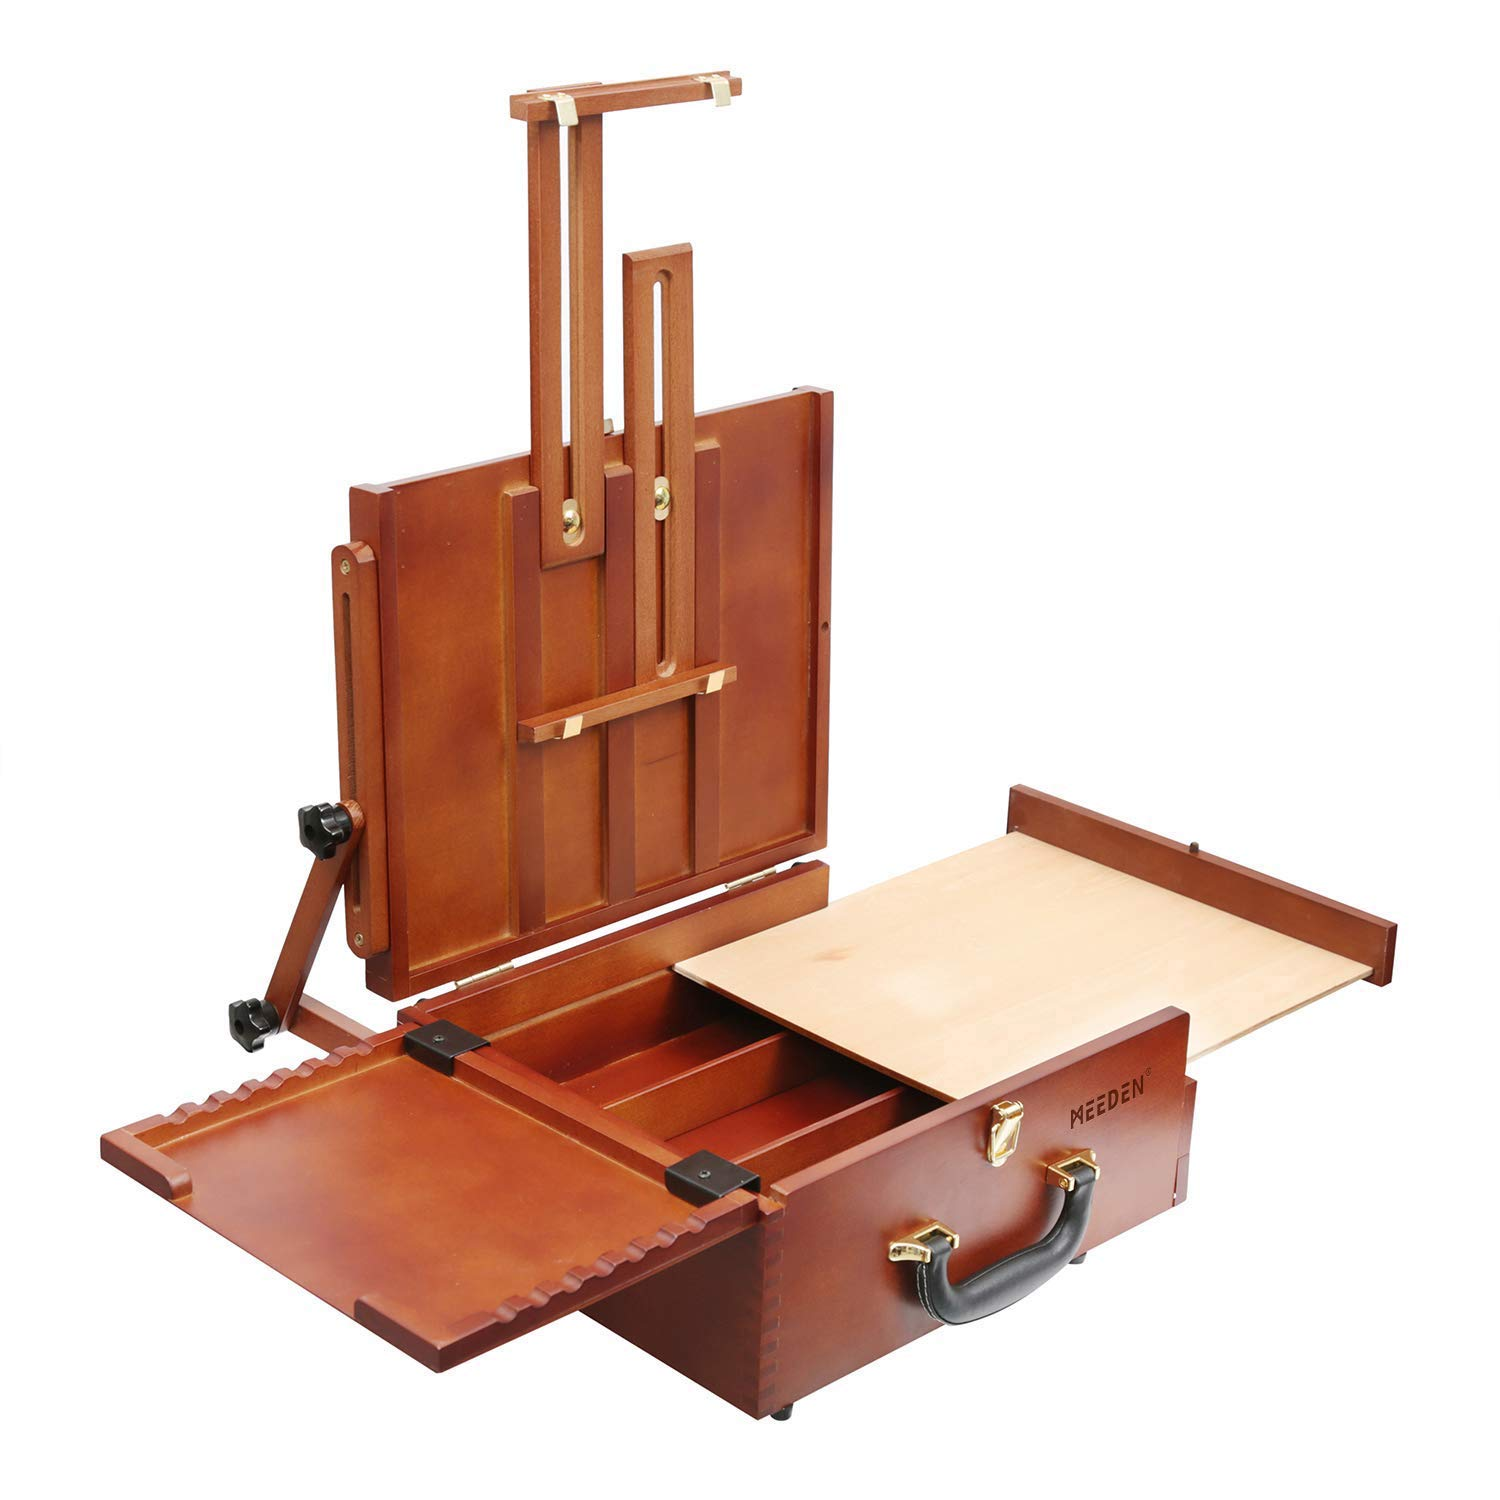 MEEDEN Ultimate Pochade Box, Lightweight French Box Easel for Plein Air Painting, Makes Outdoor Painting Easy and Fun